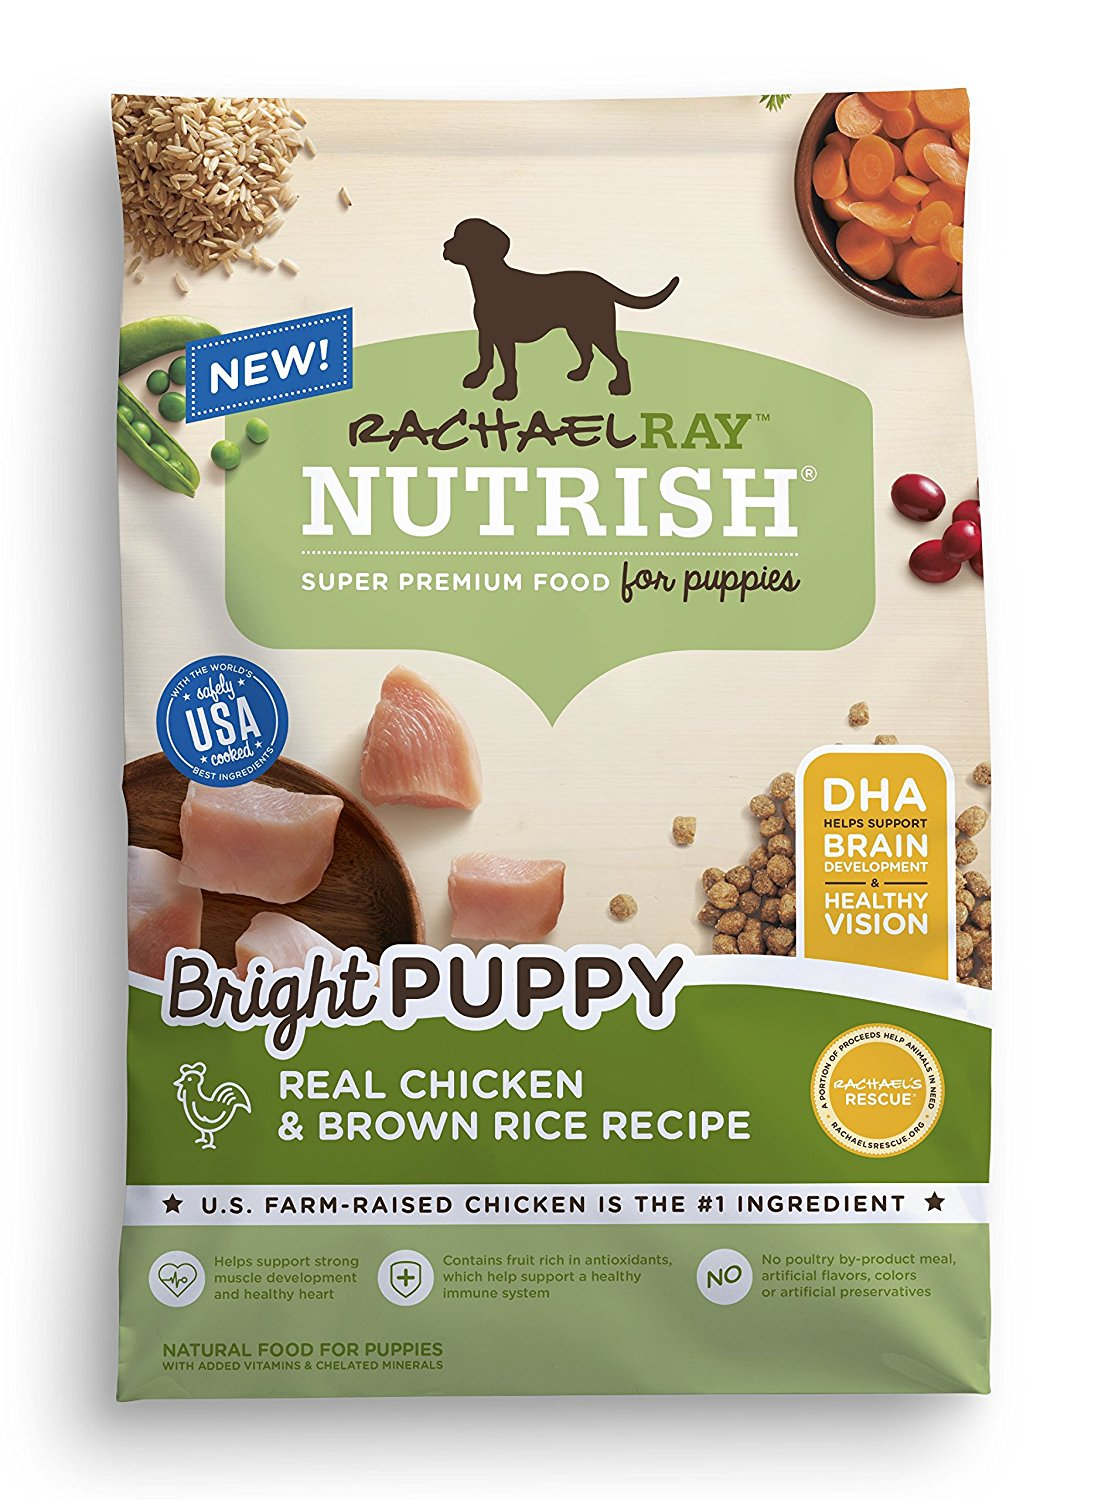 (AK, HI, PR Only) Rachael Ray Nutrish Bright Puppy Natural Dry Dog Food, Real Chicken & Brown Rice Recipe 14 lb